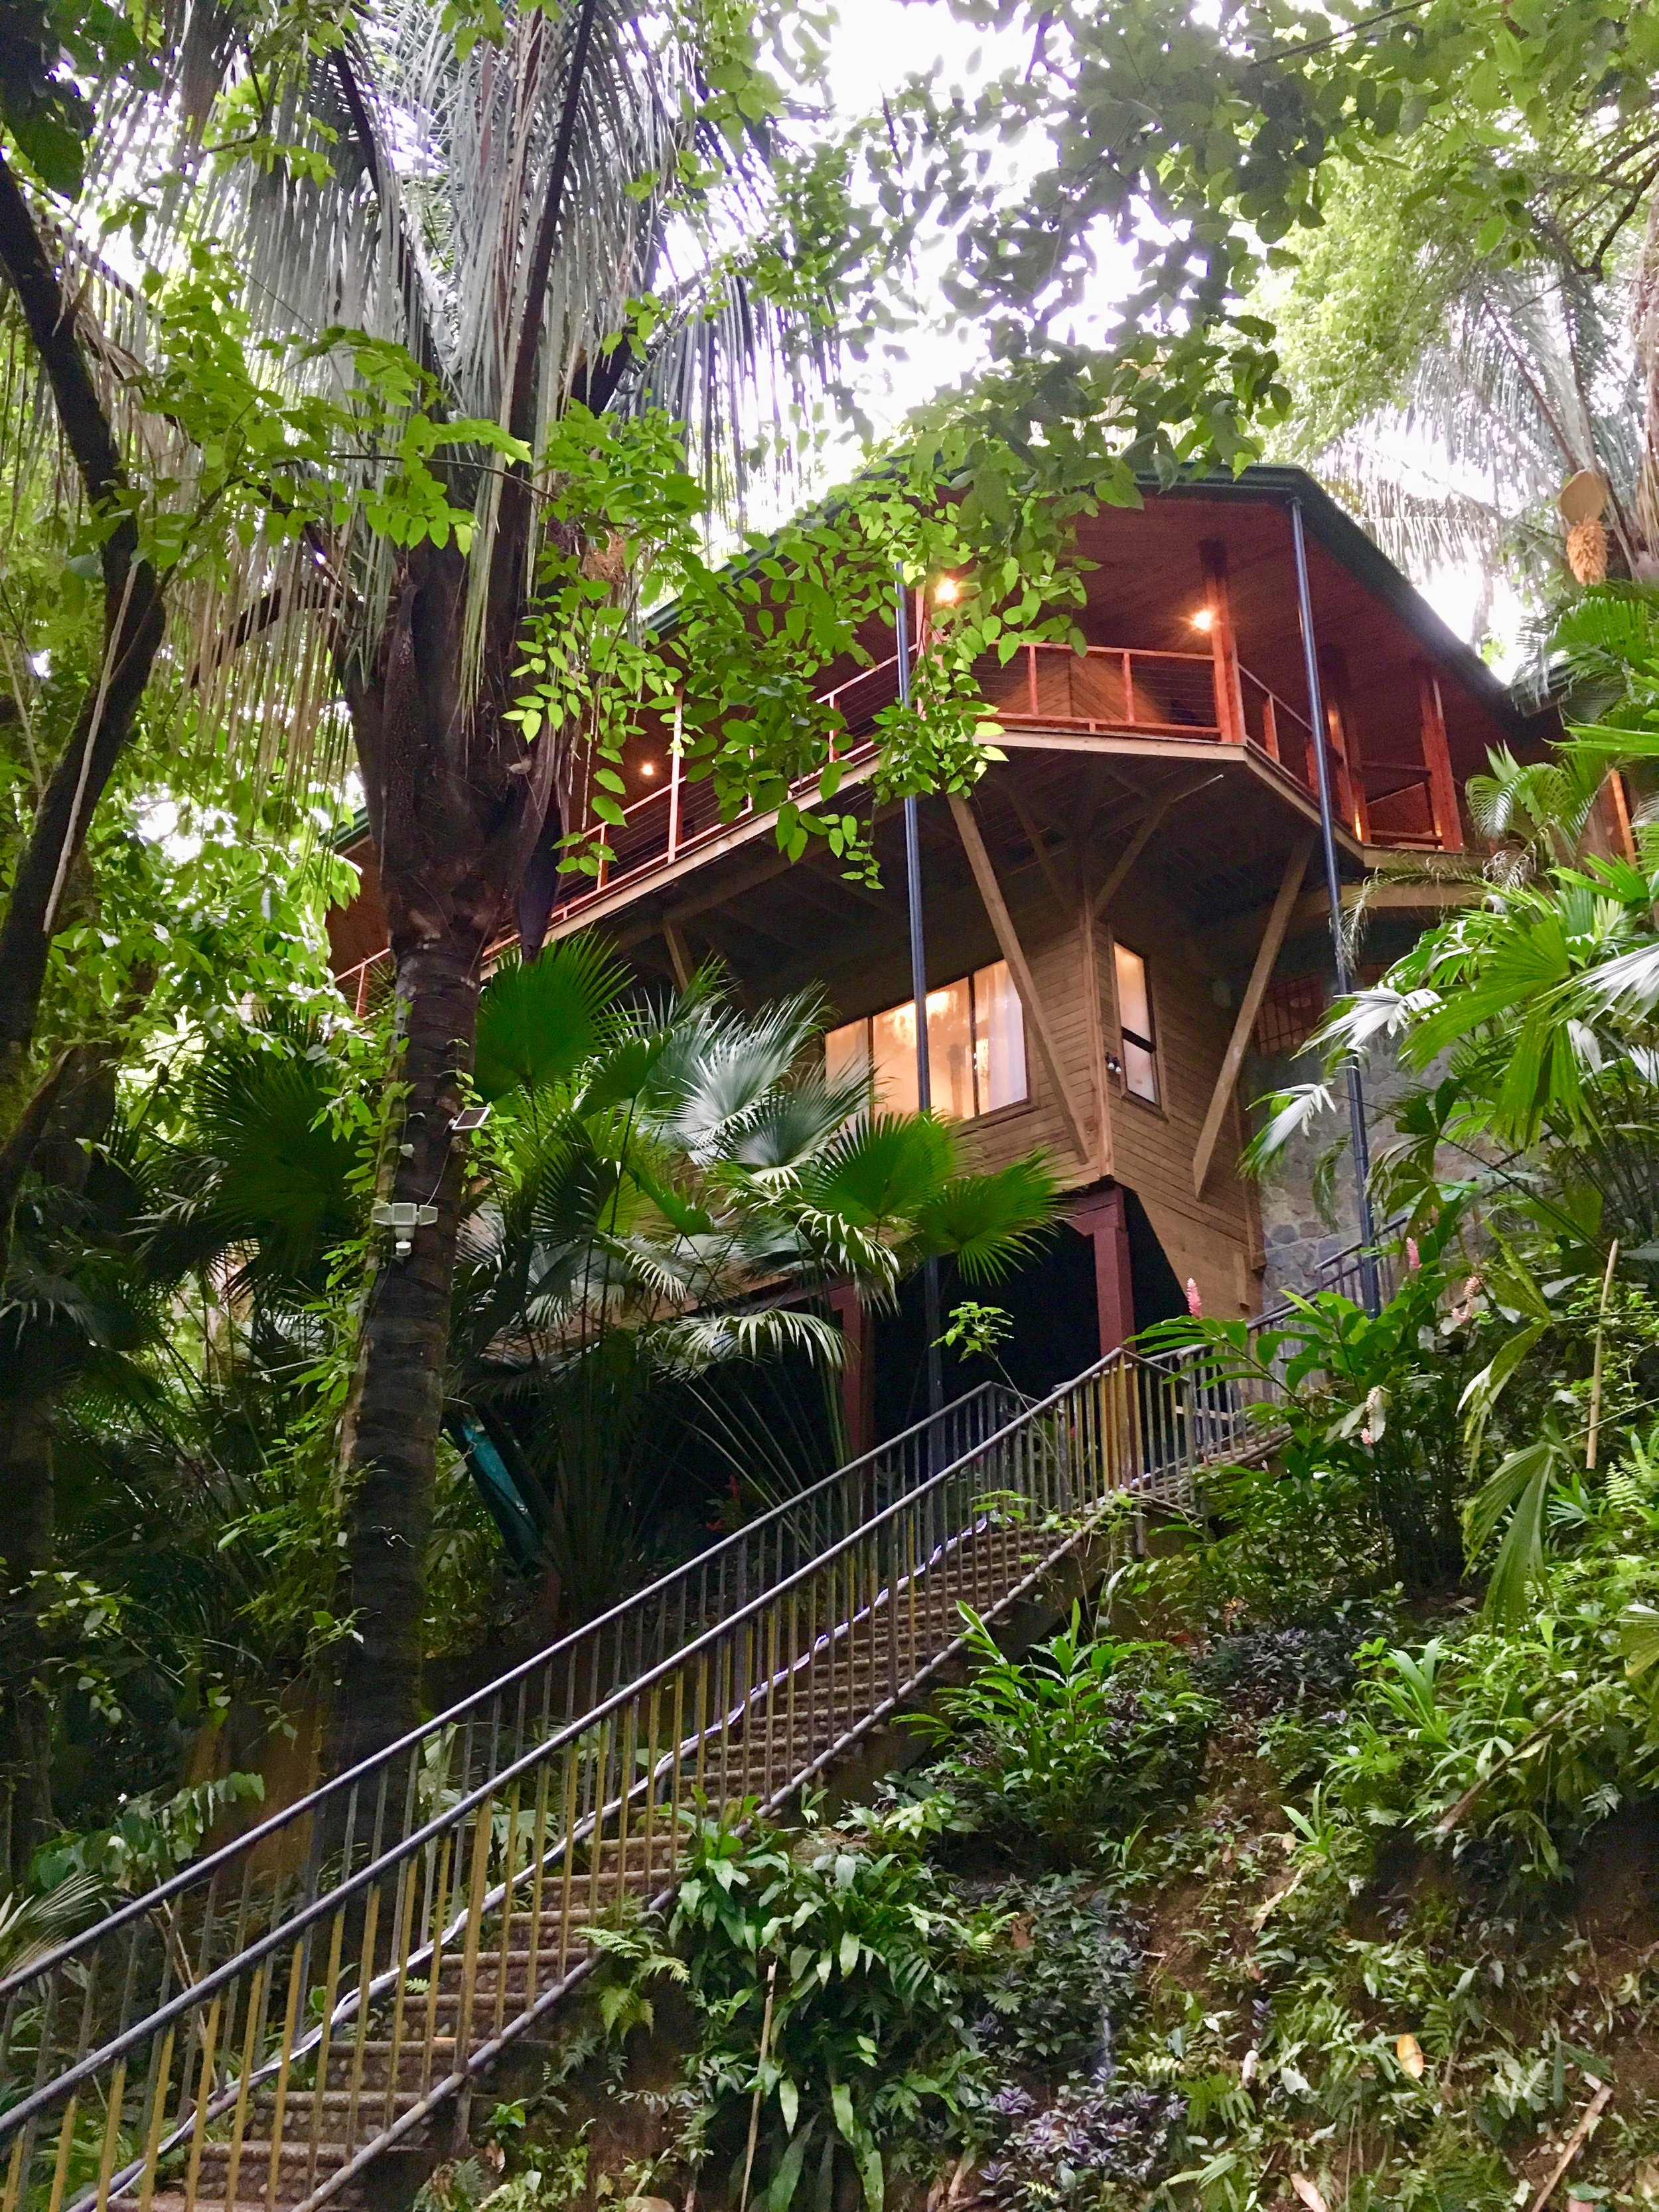 Bali Tree House from the bottom parking area